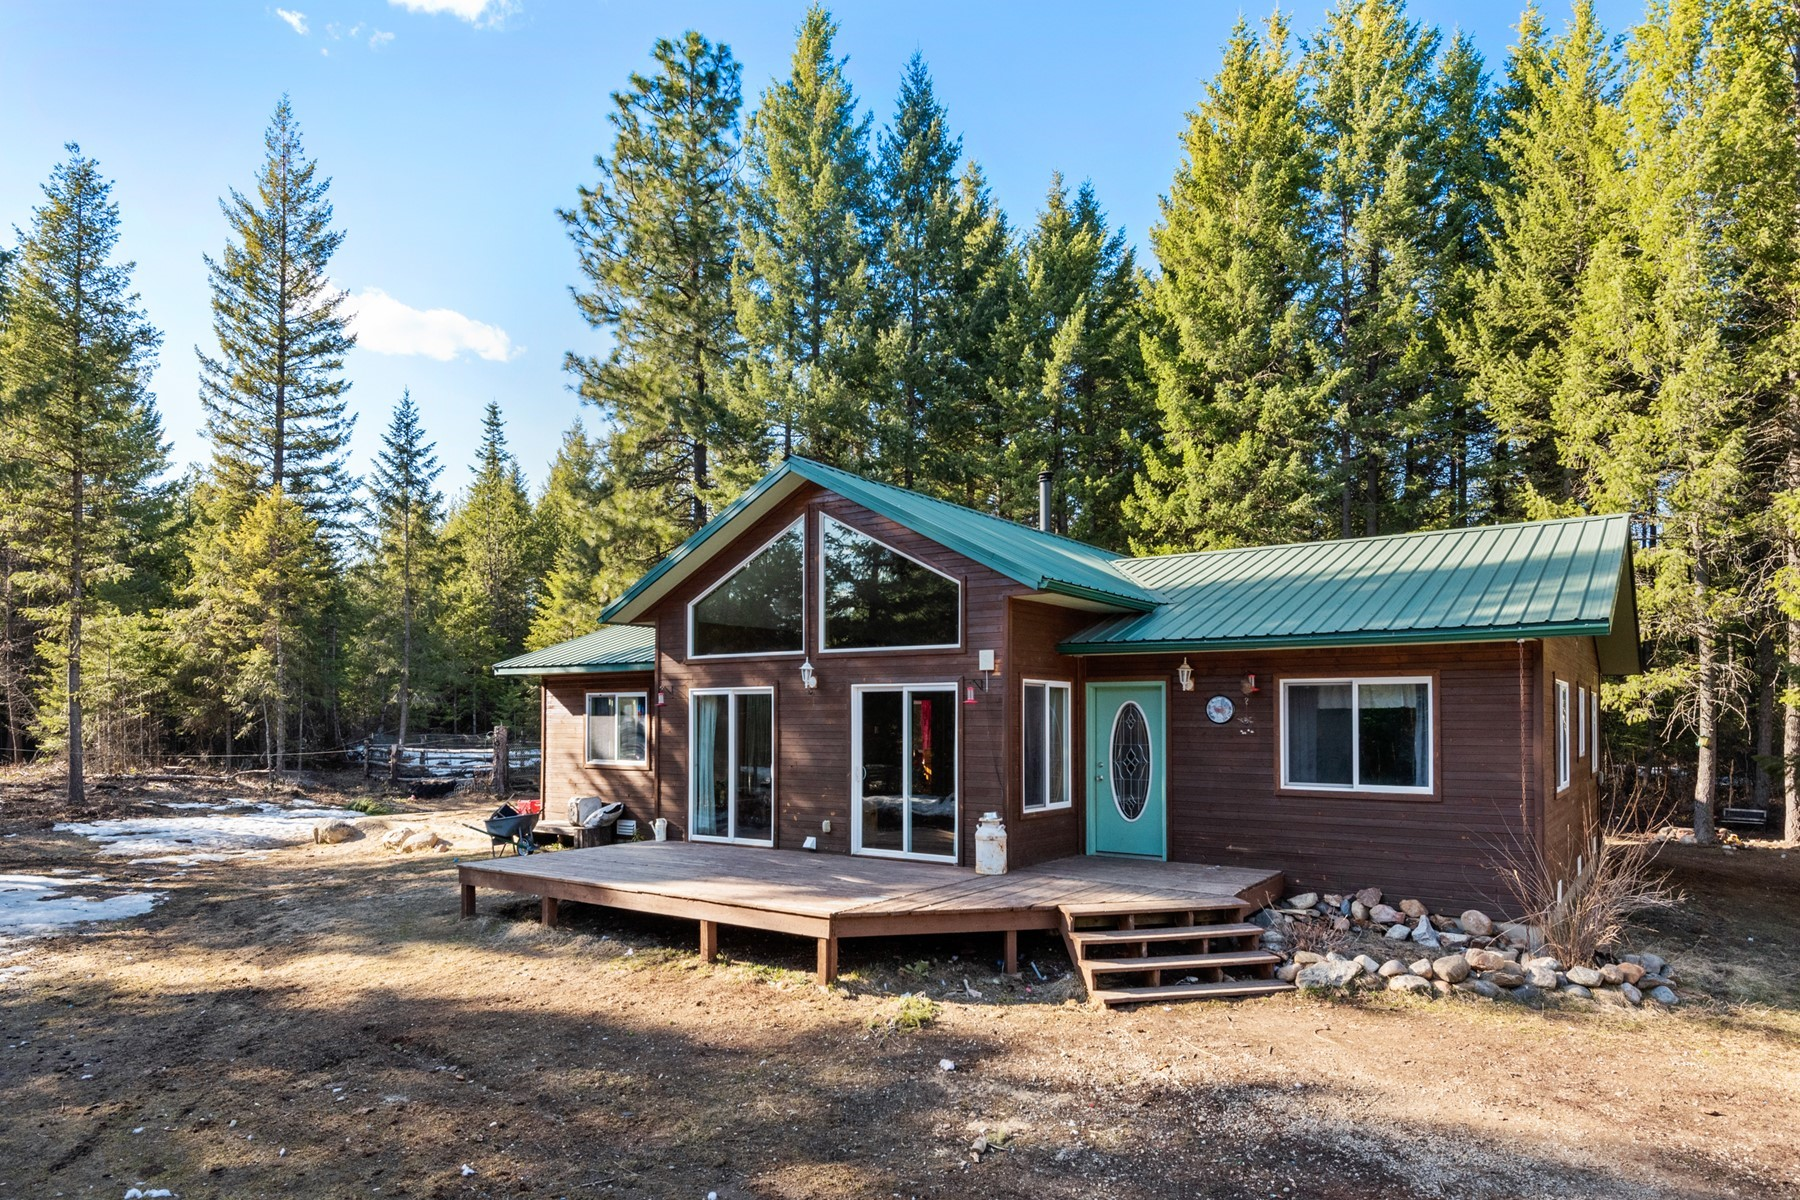 Single Family Homes for Active at Home and Shop on 4.6 Acres 2190 Old Priest River Rd Priest River, Idaho 83856 United States